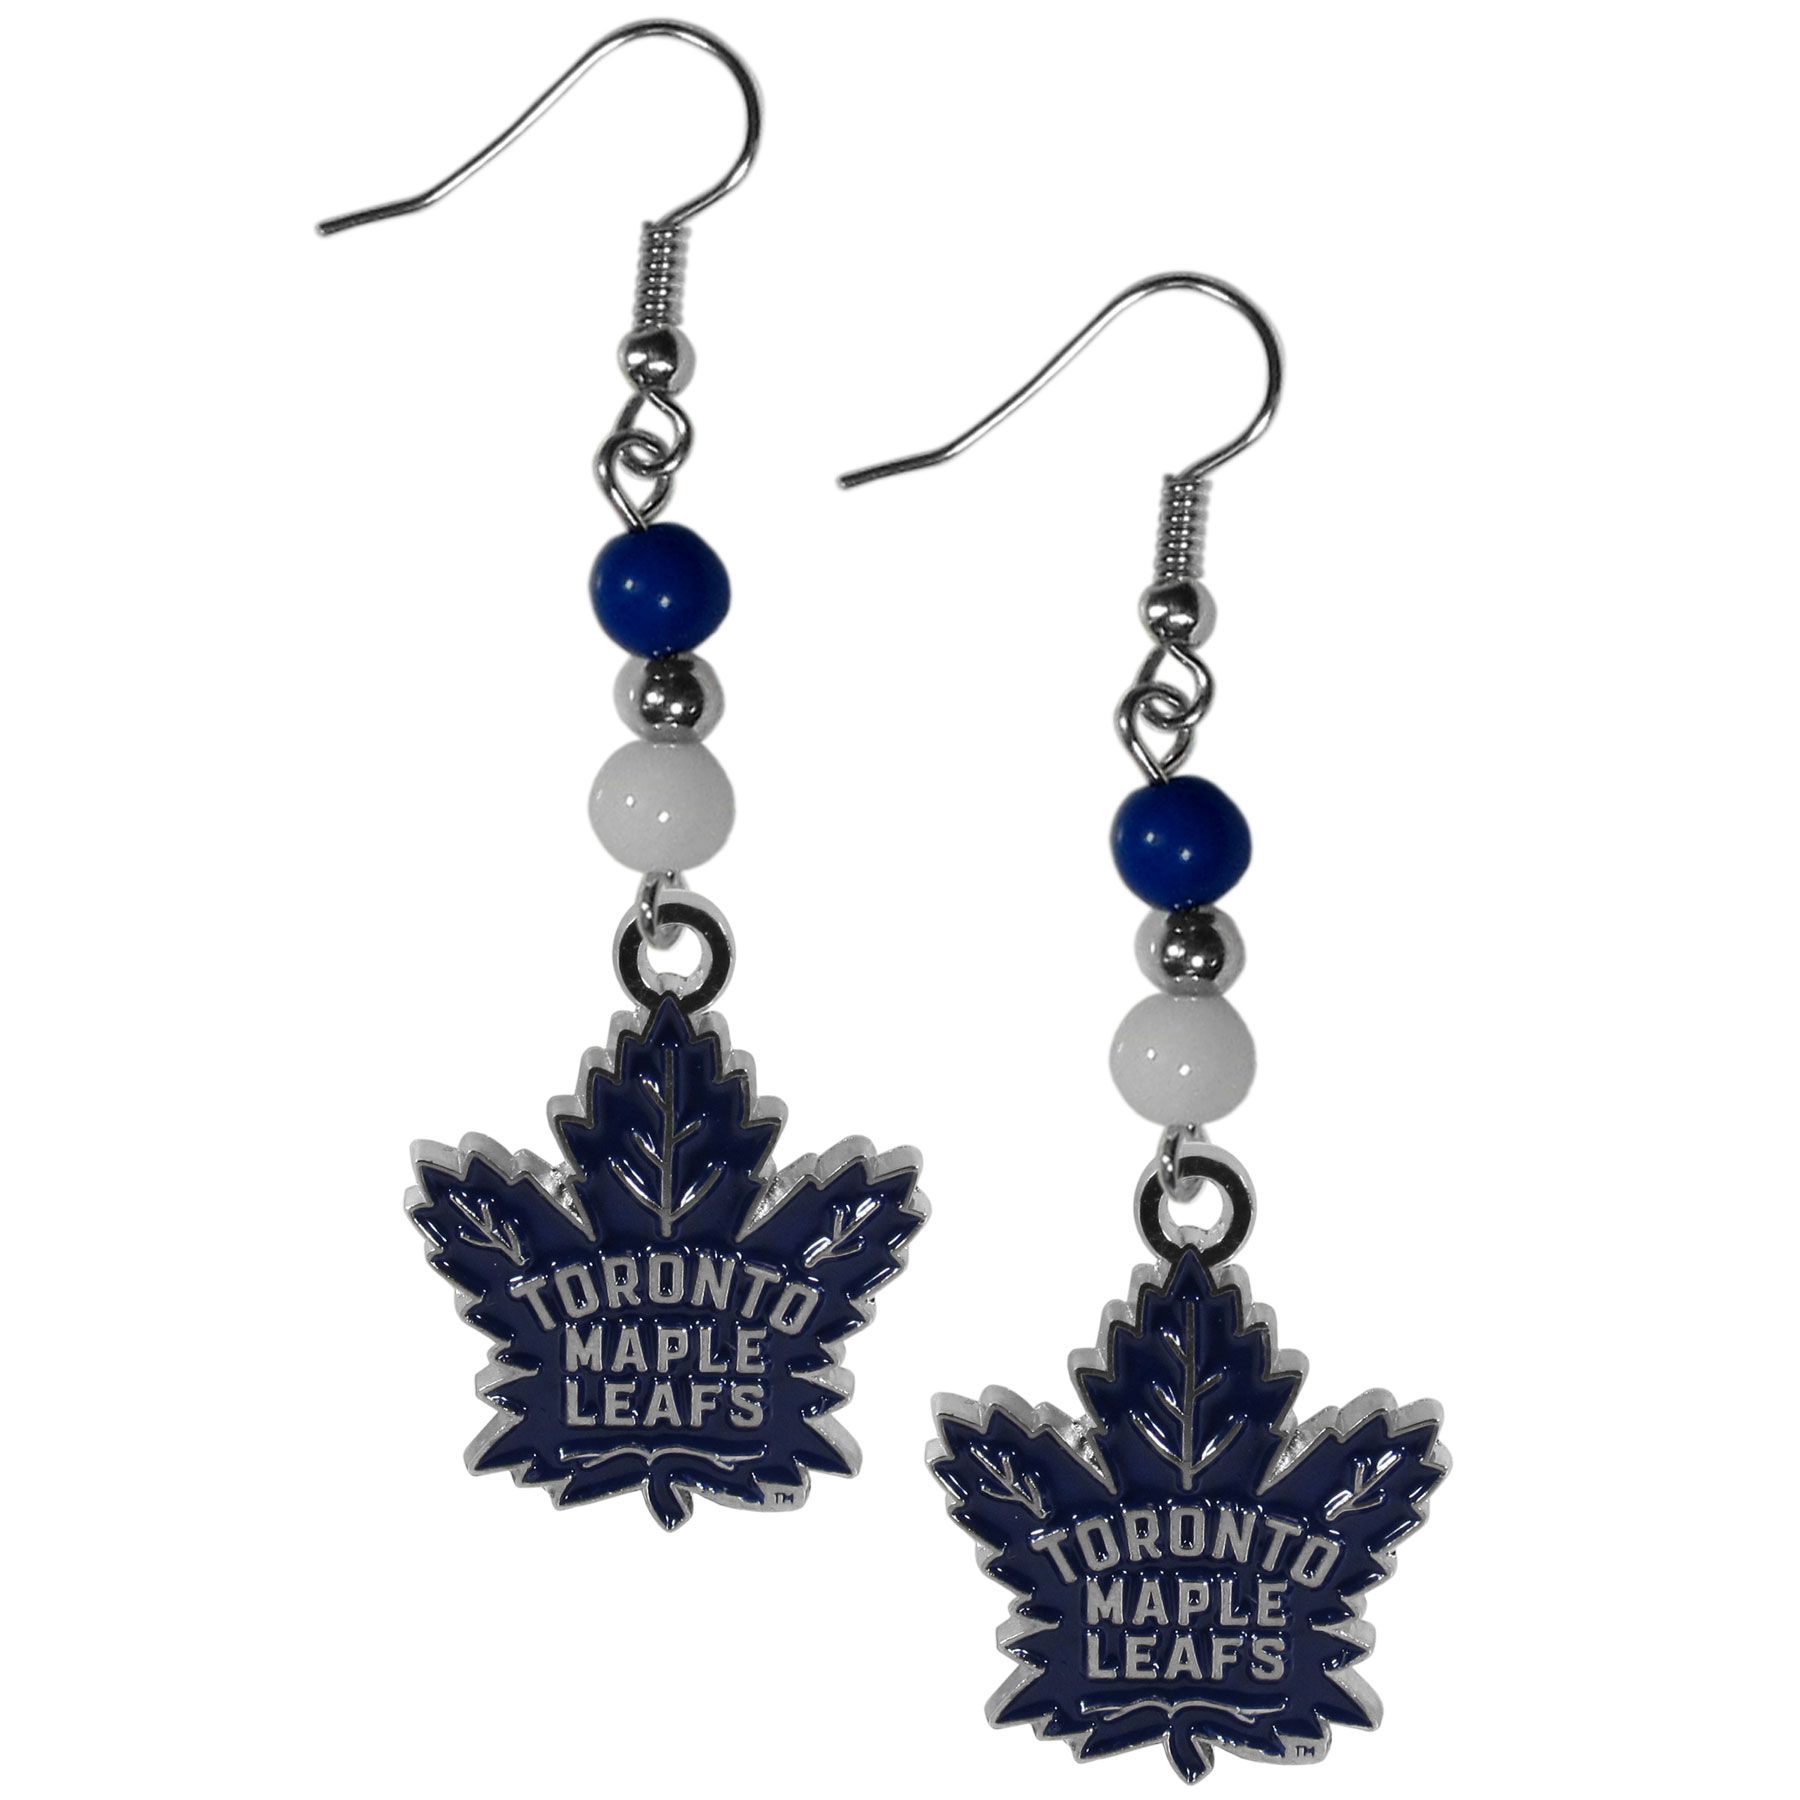 Toronto Maple Leafs® Fan Bead Dangle Earrings - Love your team, show it off with our Toronto Maple Leafs® bead dangle earrings! These super cute earrings hang approximately 2 inches and features 2 team colored beads and a high polish team charm. A must have for game day!